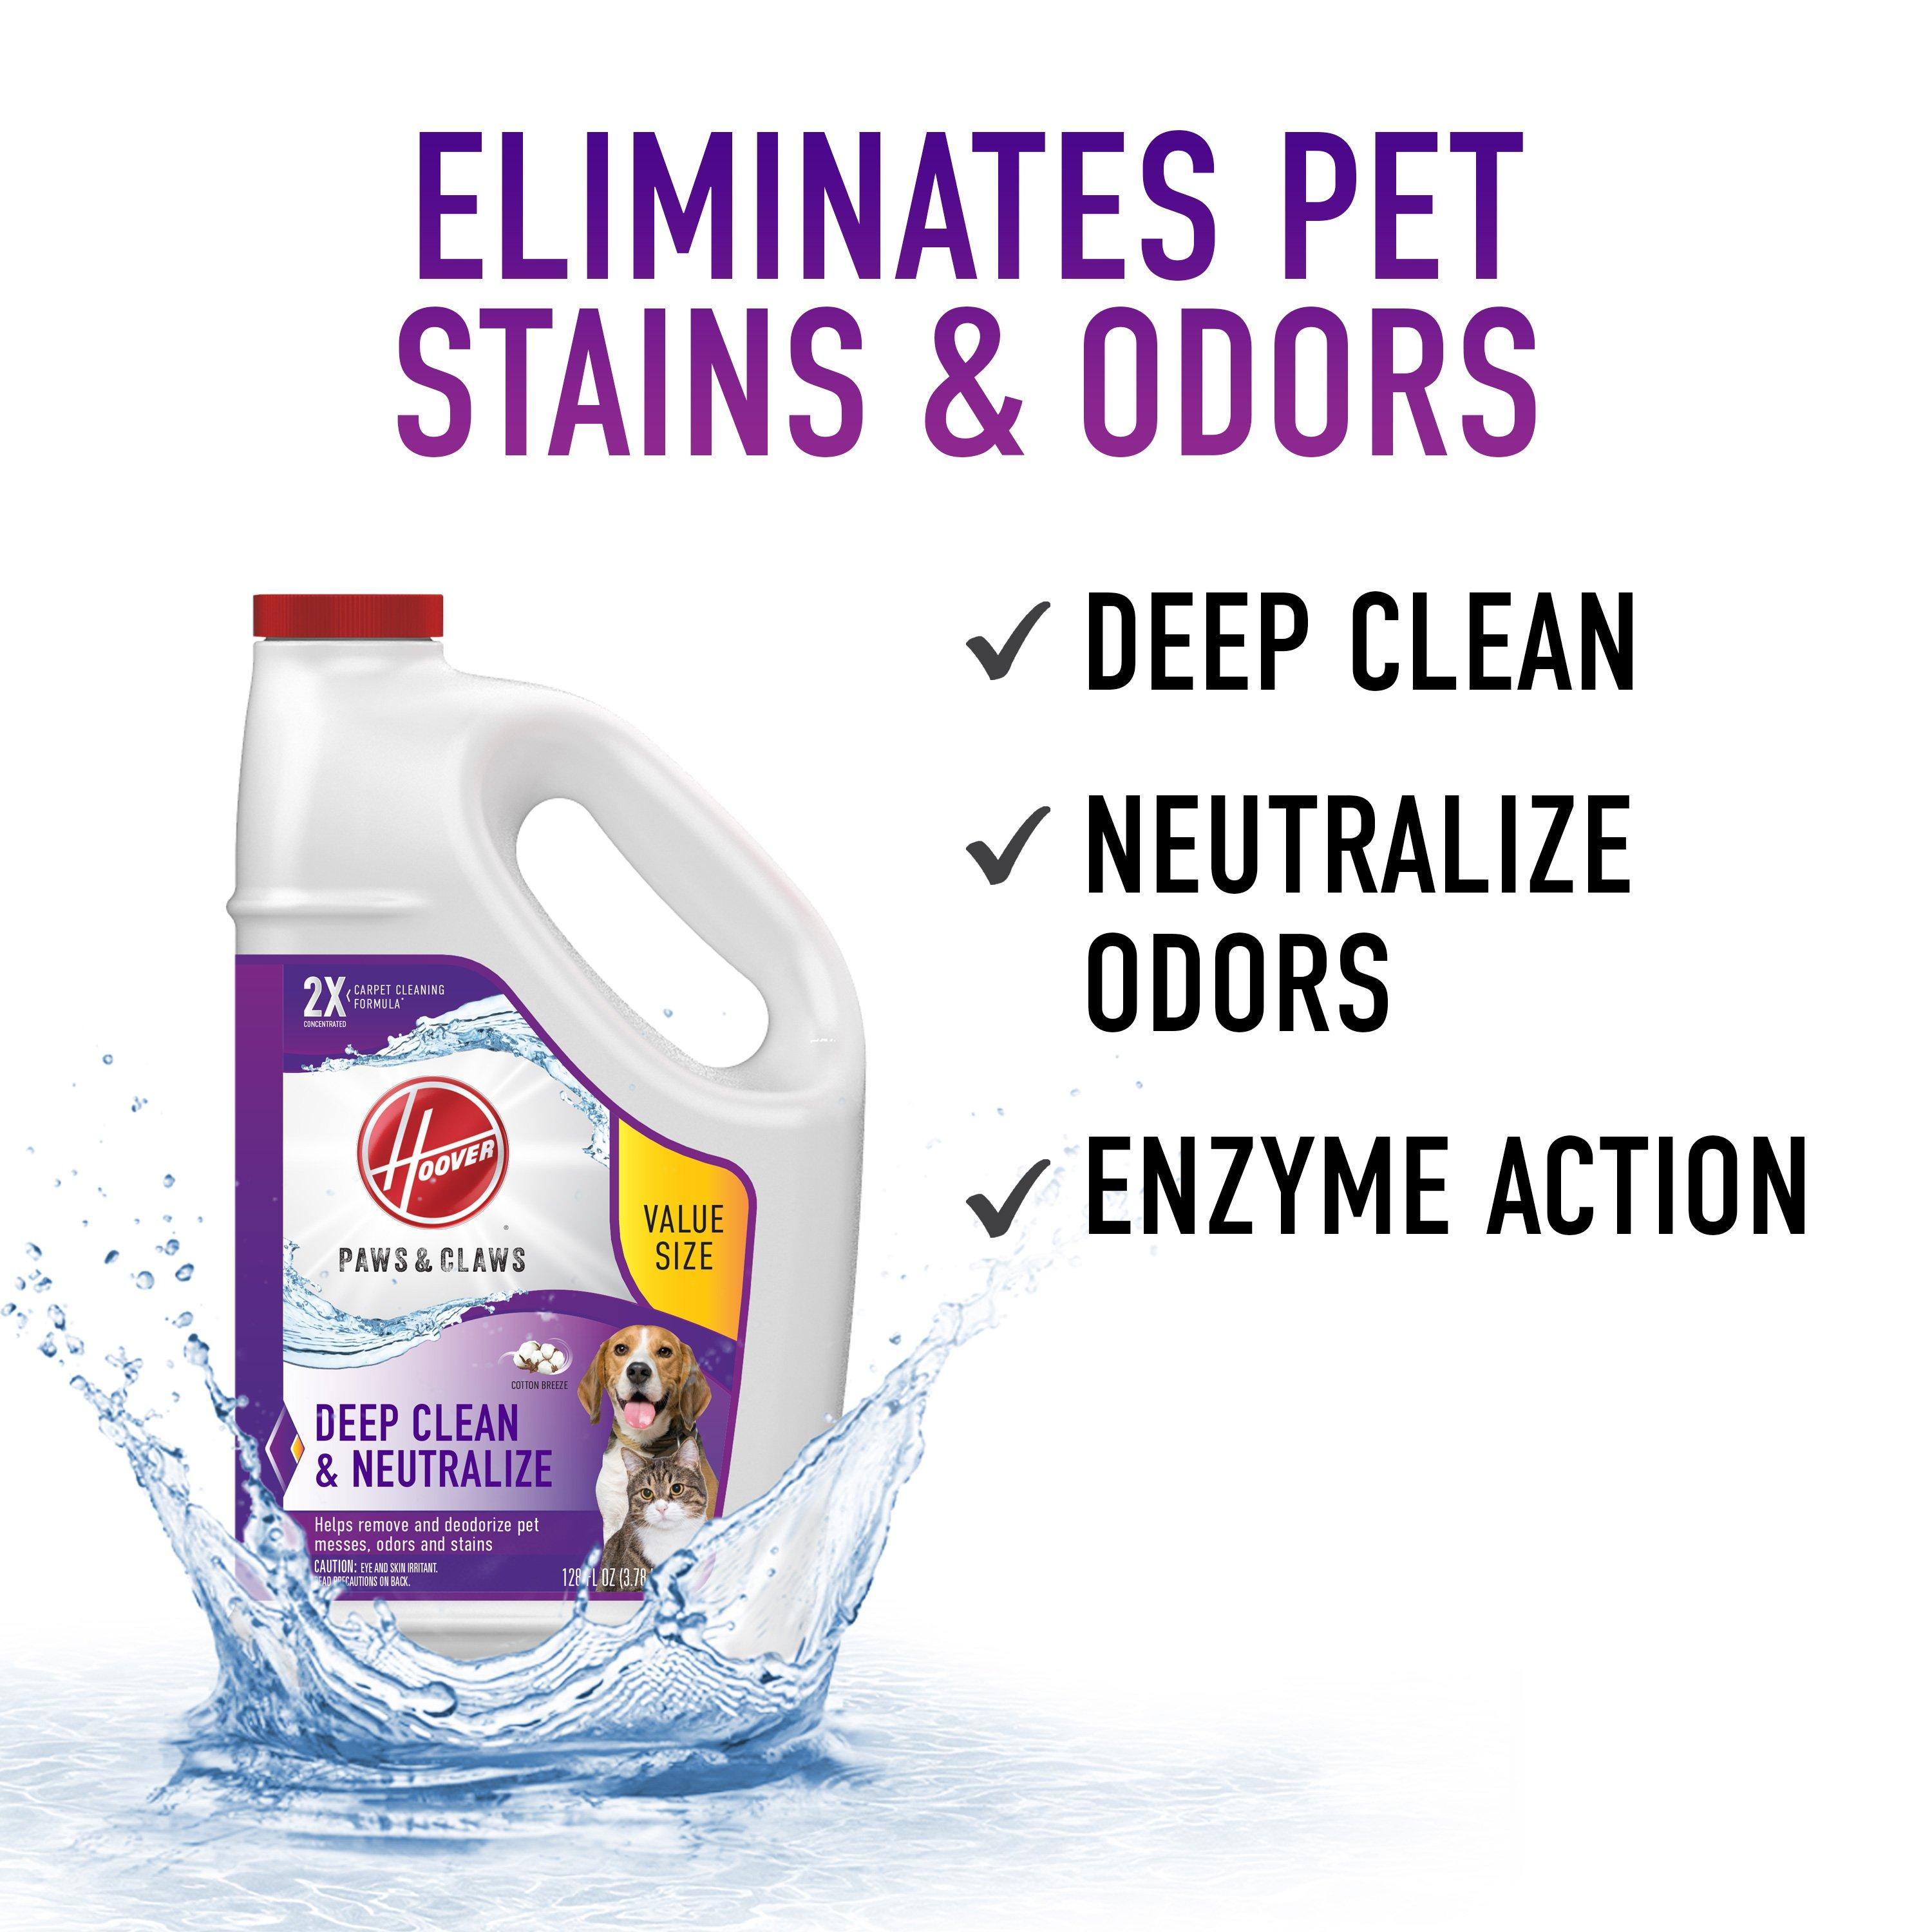 Paws & Claws Carpet Cleaning Formula 128oz5